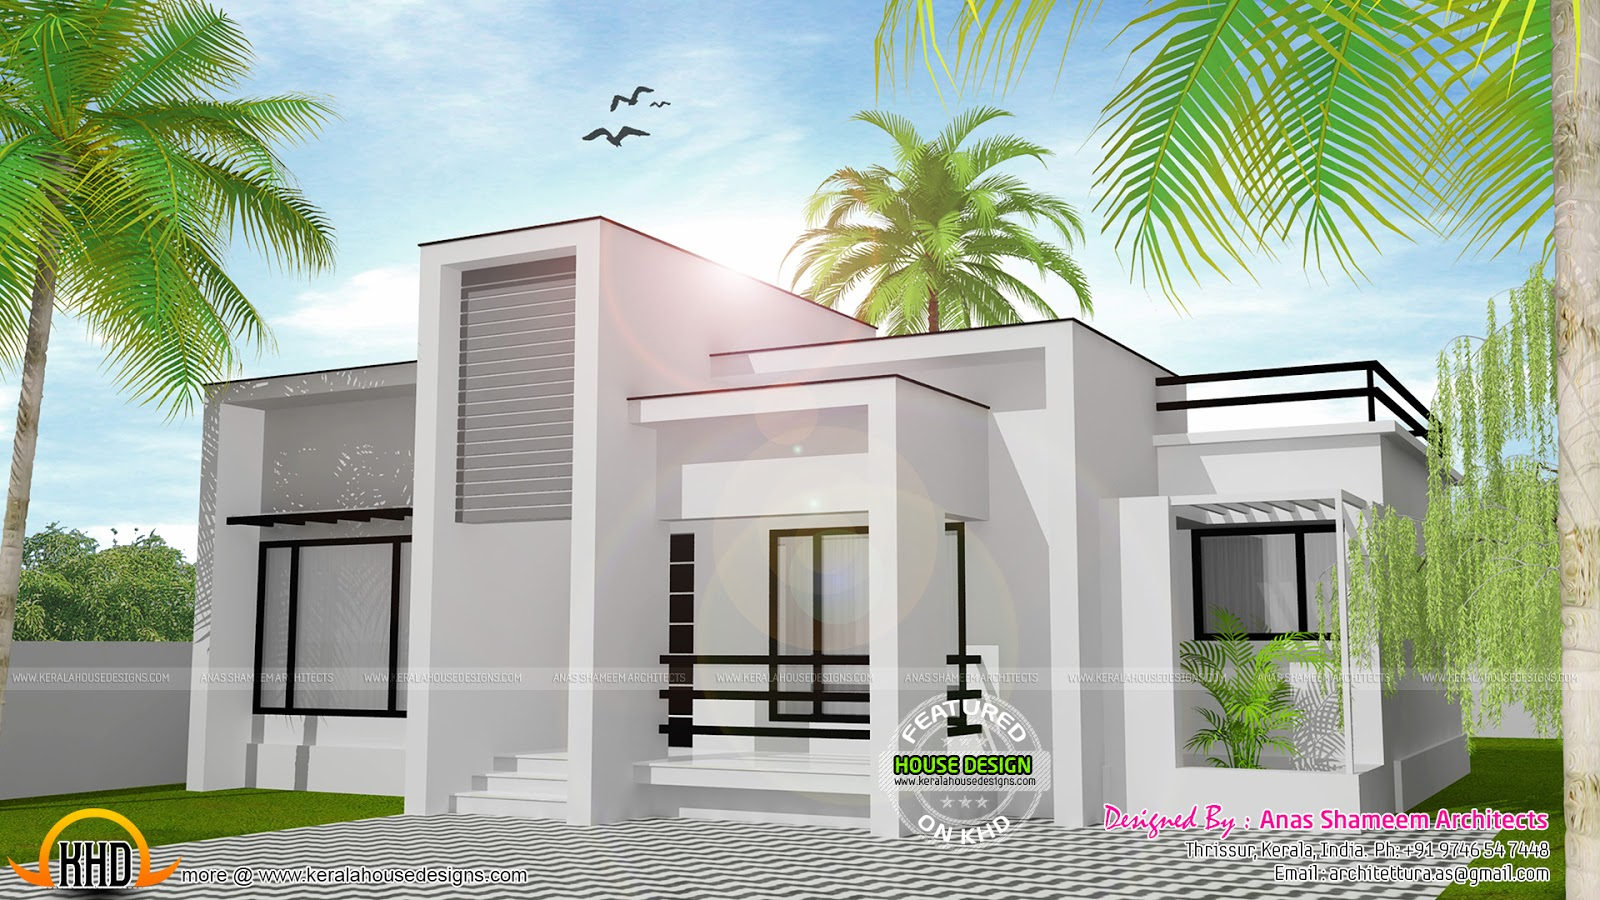 978 sq ft flat roof single floor home kerala home design and floor plans - Tavoli design low cost ...